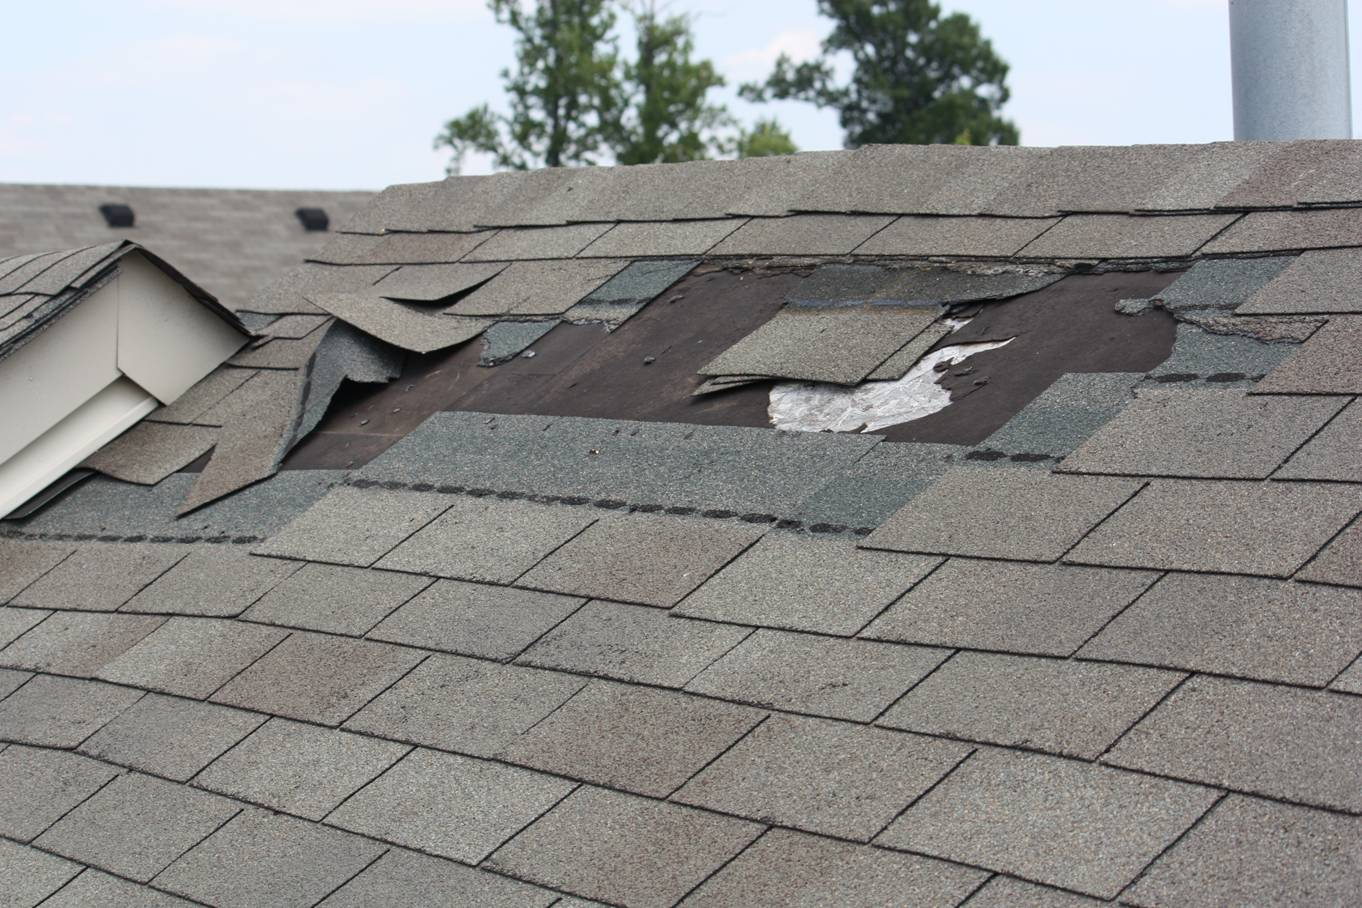 Roofing-Repair-in-virginia.jpg